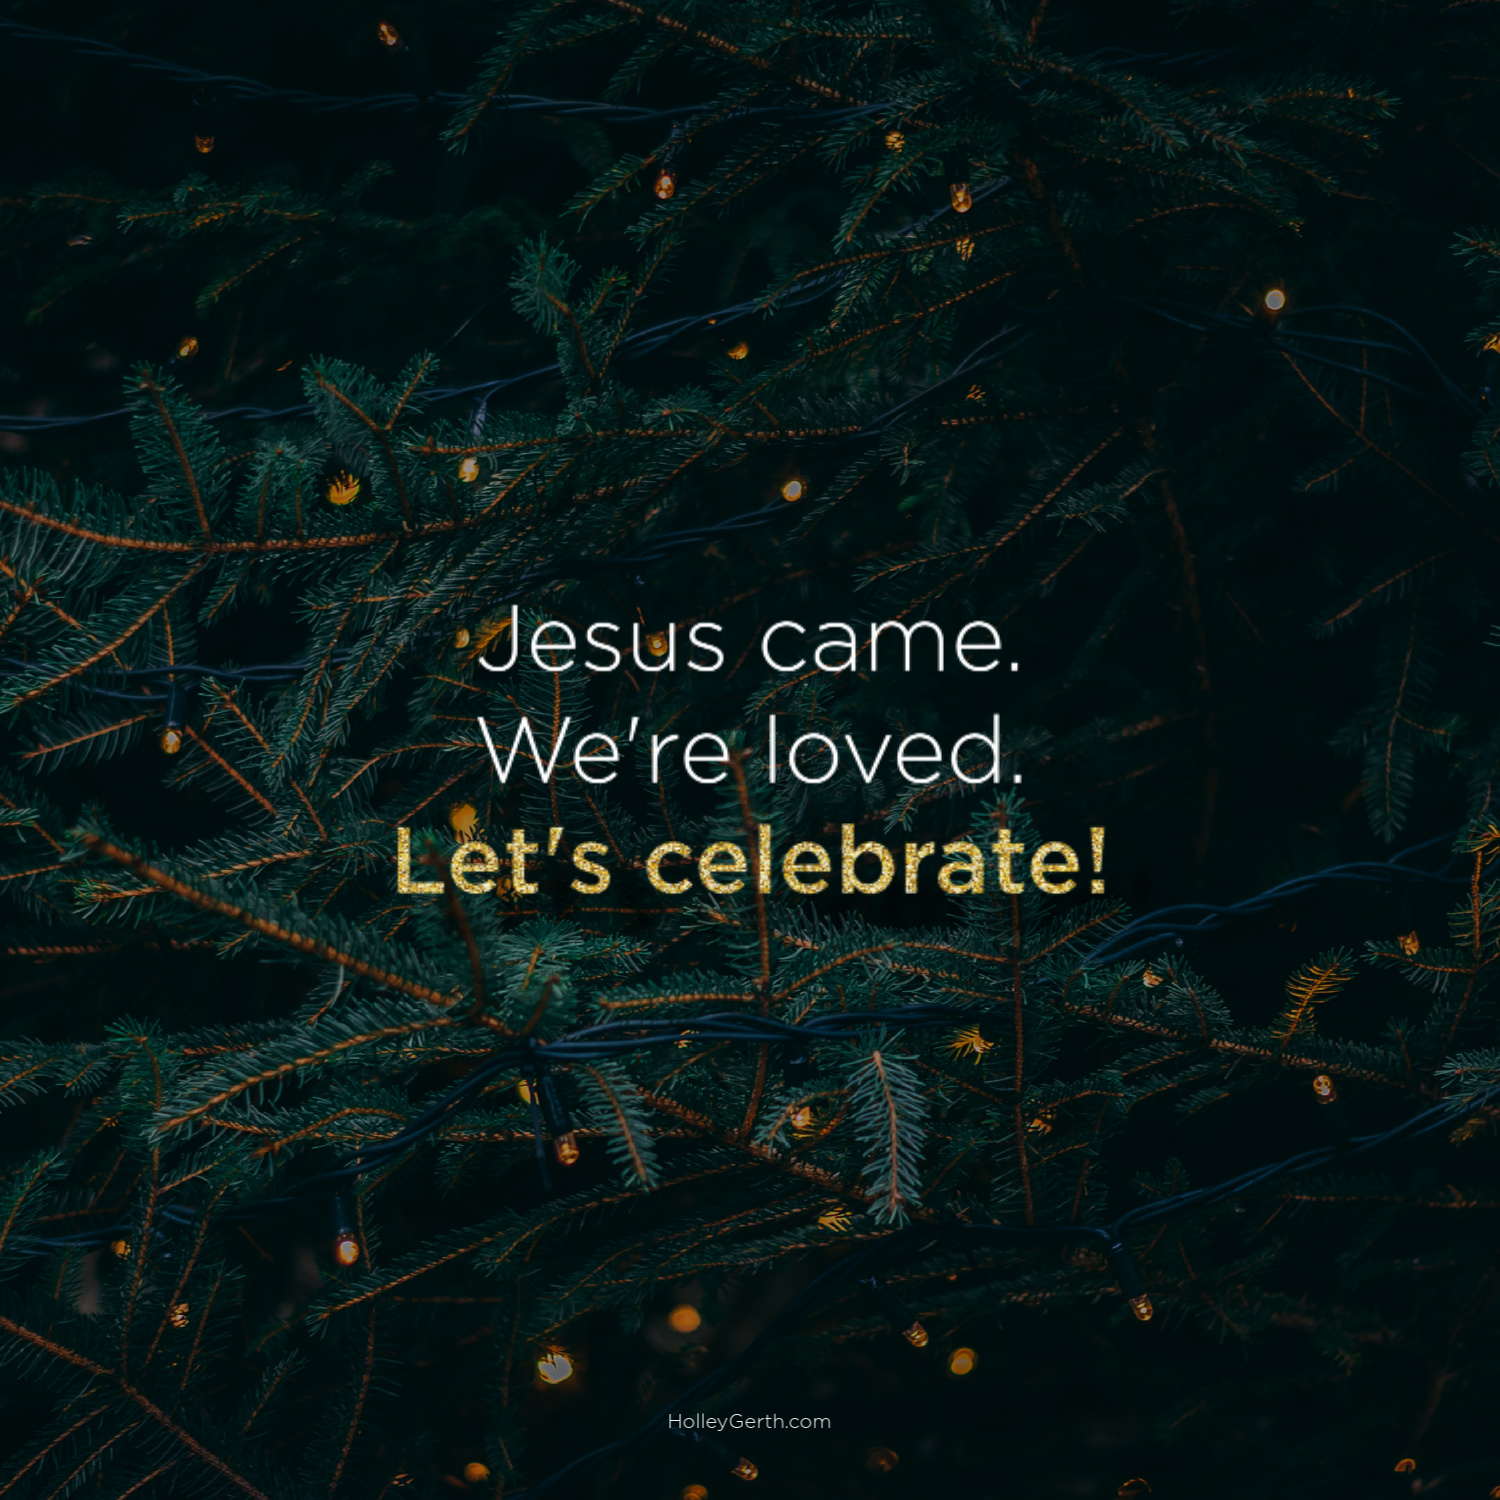 Jesus came. We're loved. Let's celebrate!